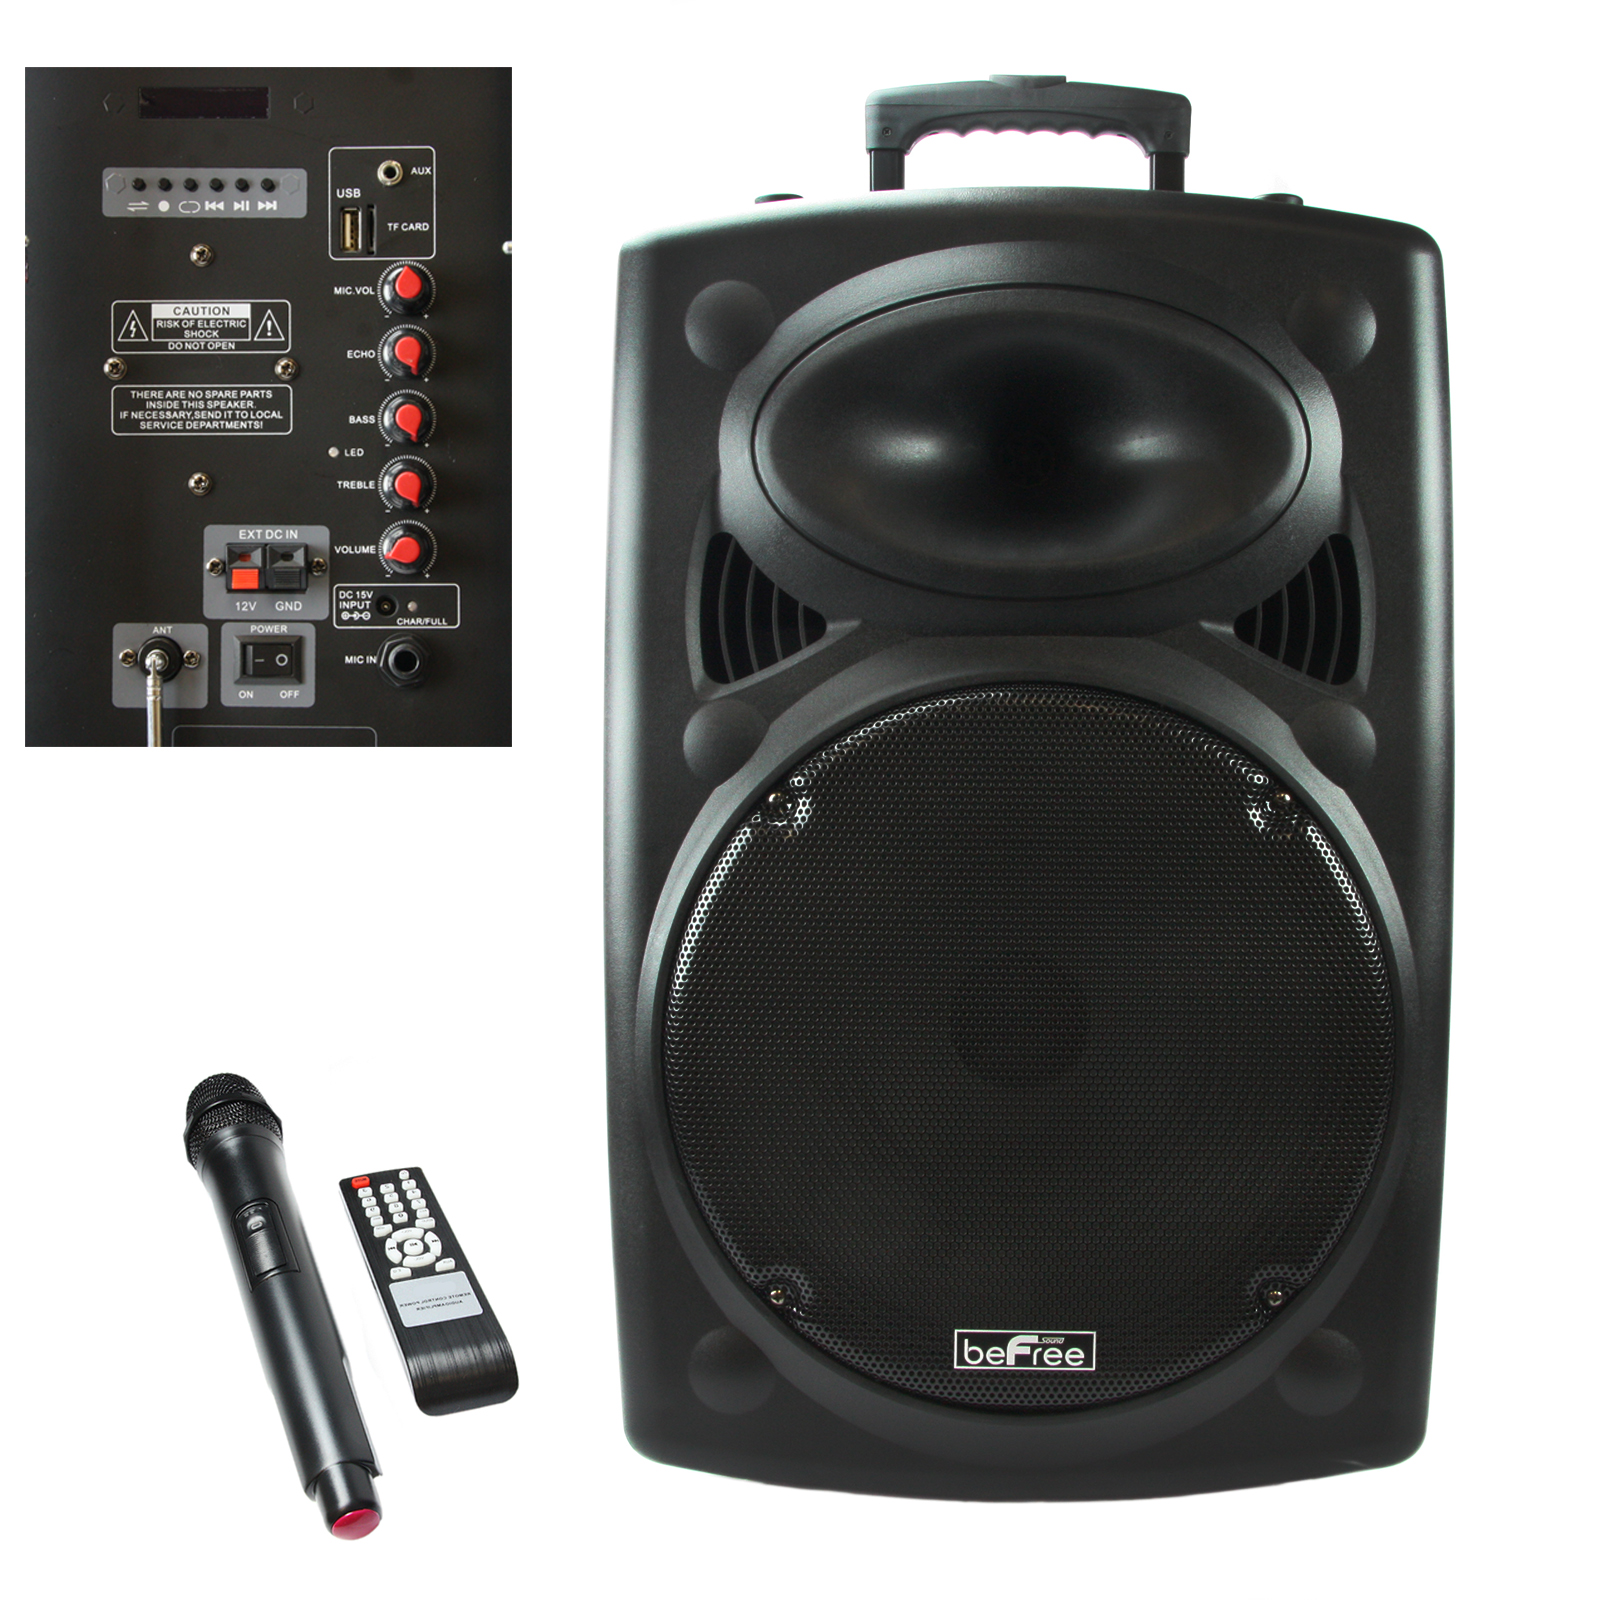 beFree Sound 15 Inch Woofer Portable Bluetooth Powered PA Tailgate Party Rechargeable Speaker